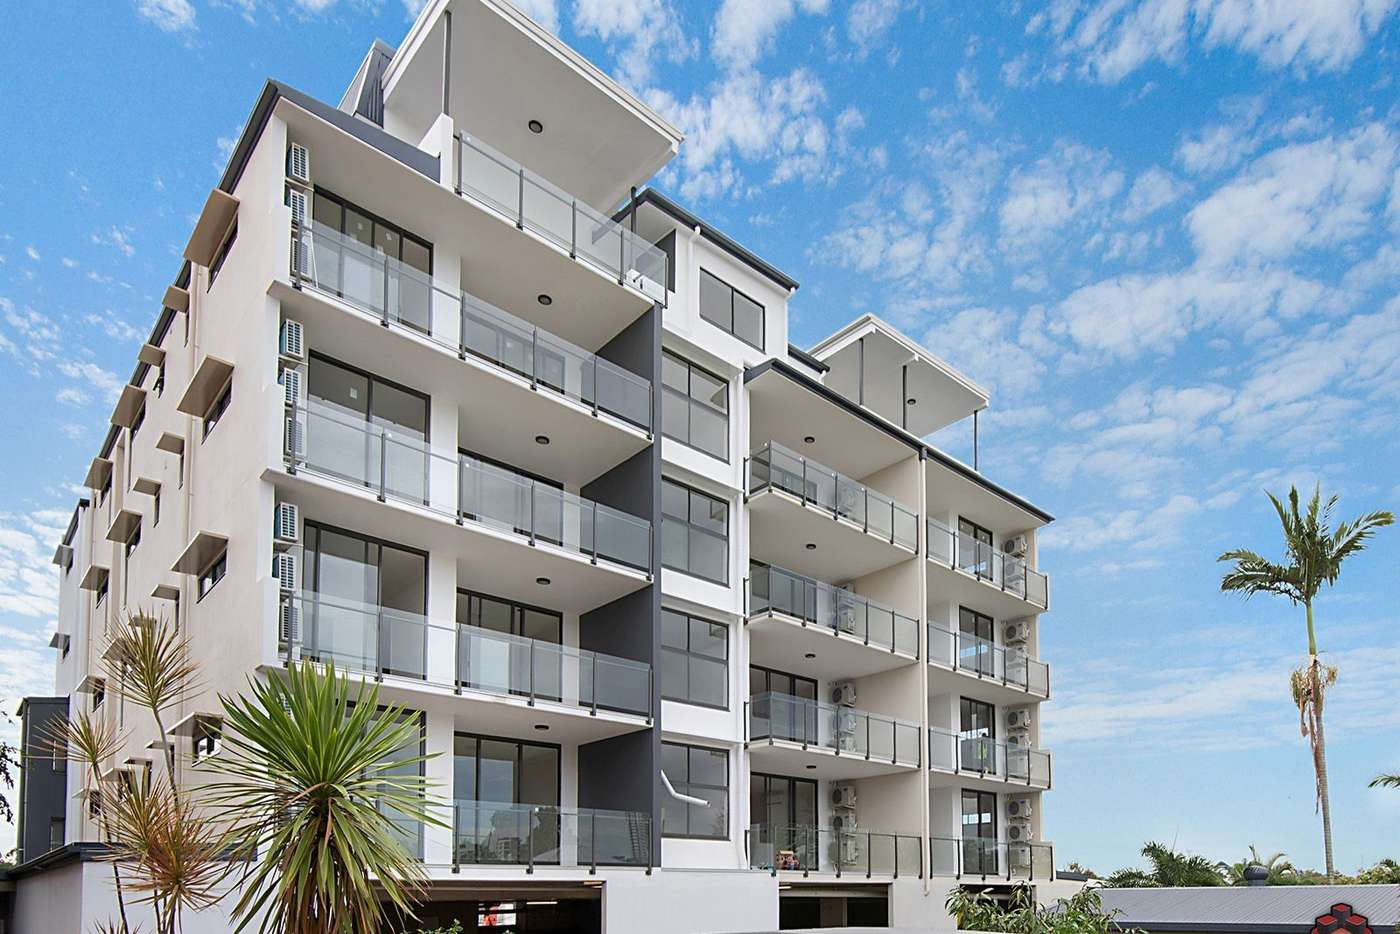 Main view of Homely apartment listing, ID:21067702/35 Gallway Street, Windsor QLD 4030